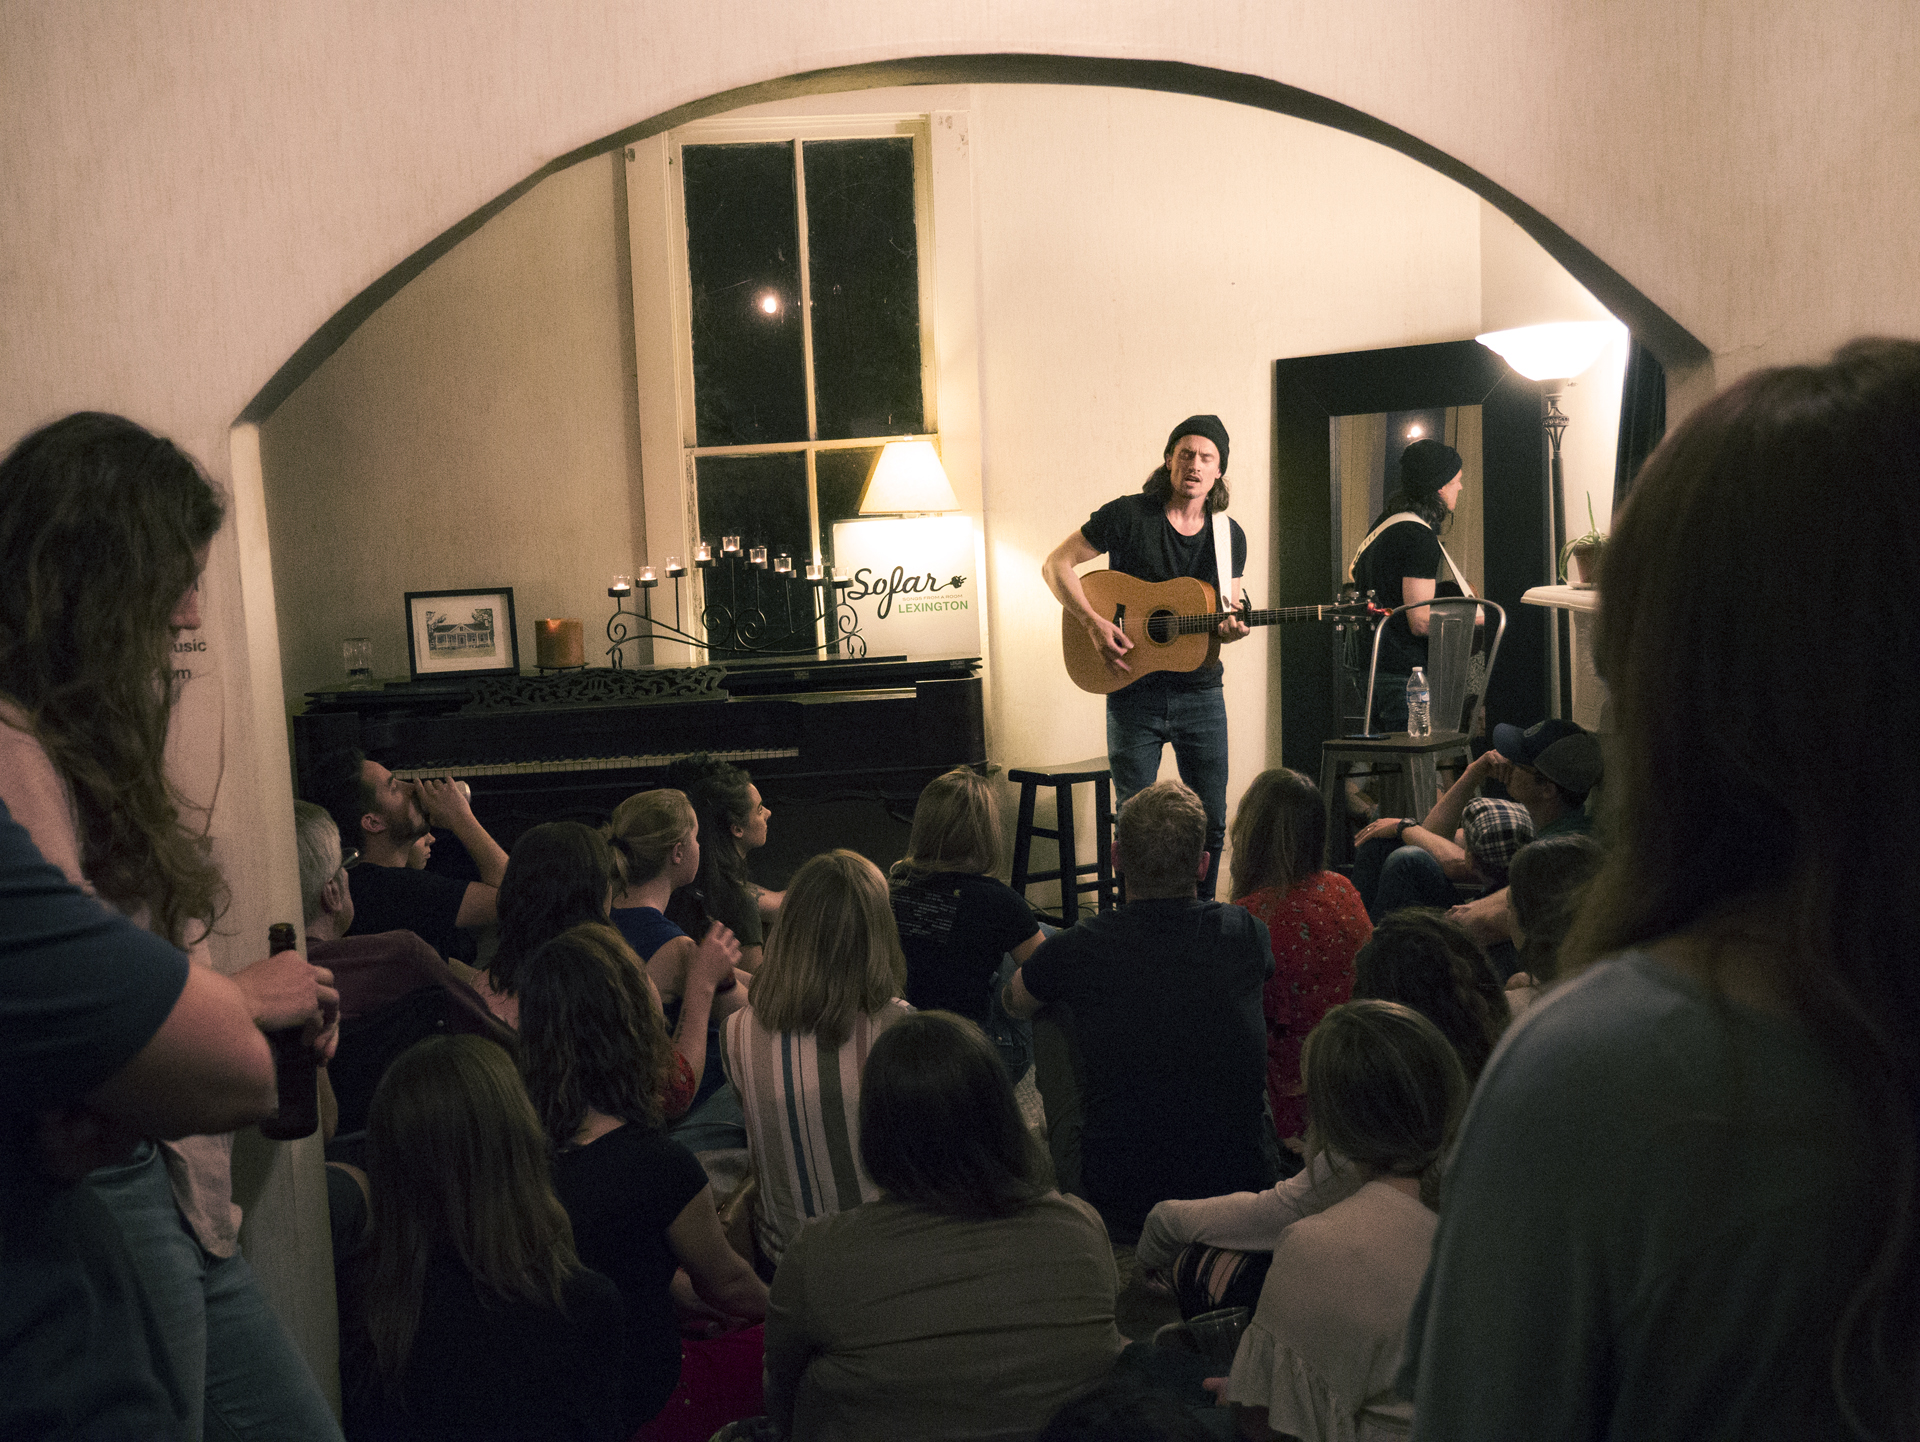 David Beckingham performs for a packed-in crowd on May 31. Photo by Eric Charles of Creative Pixels, provided by SoFar Lex team.